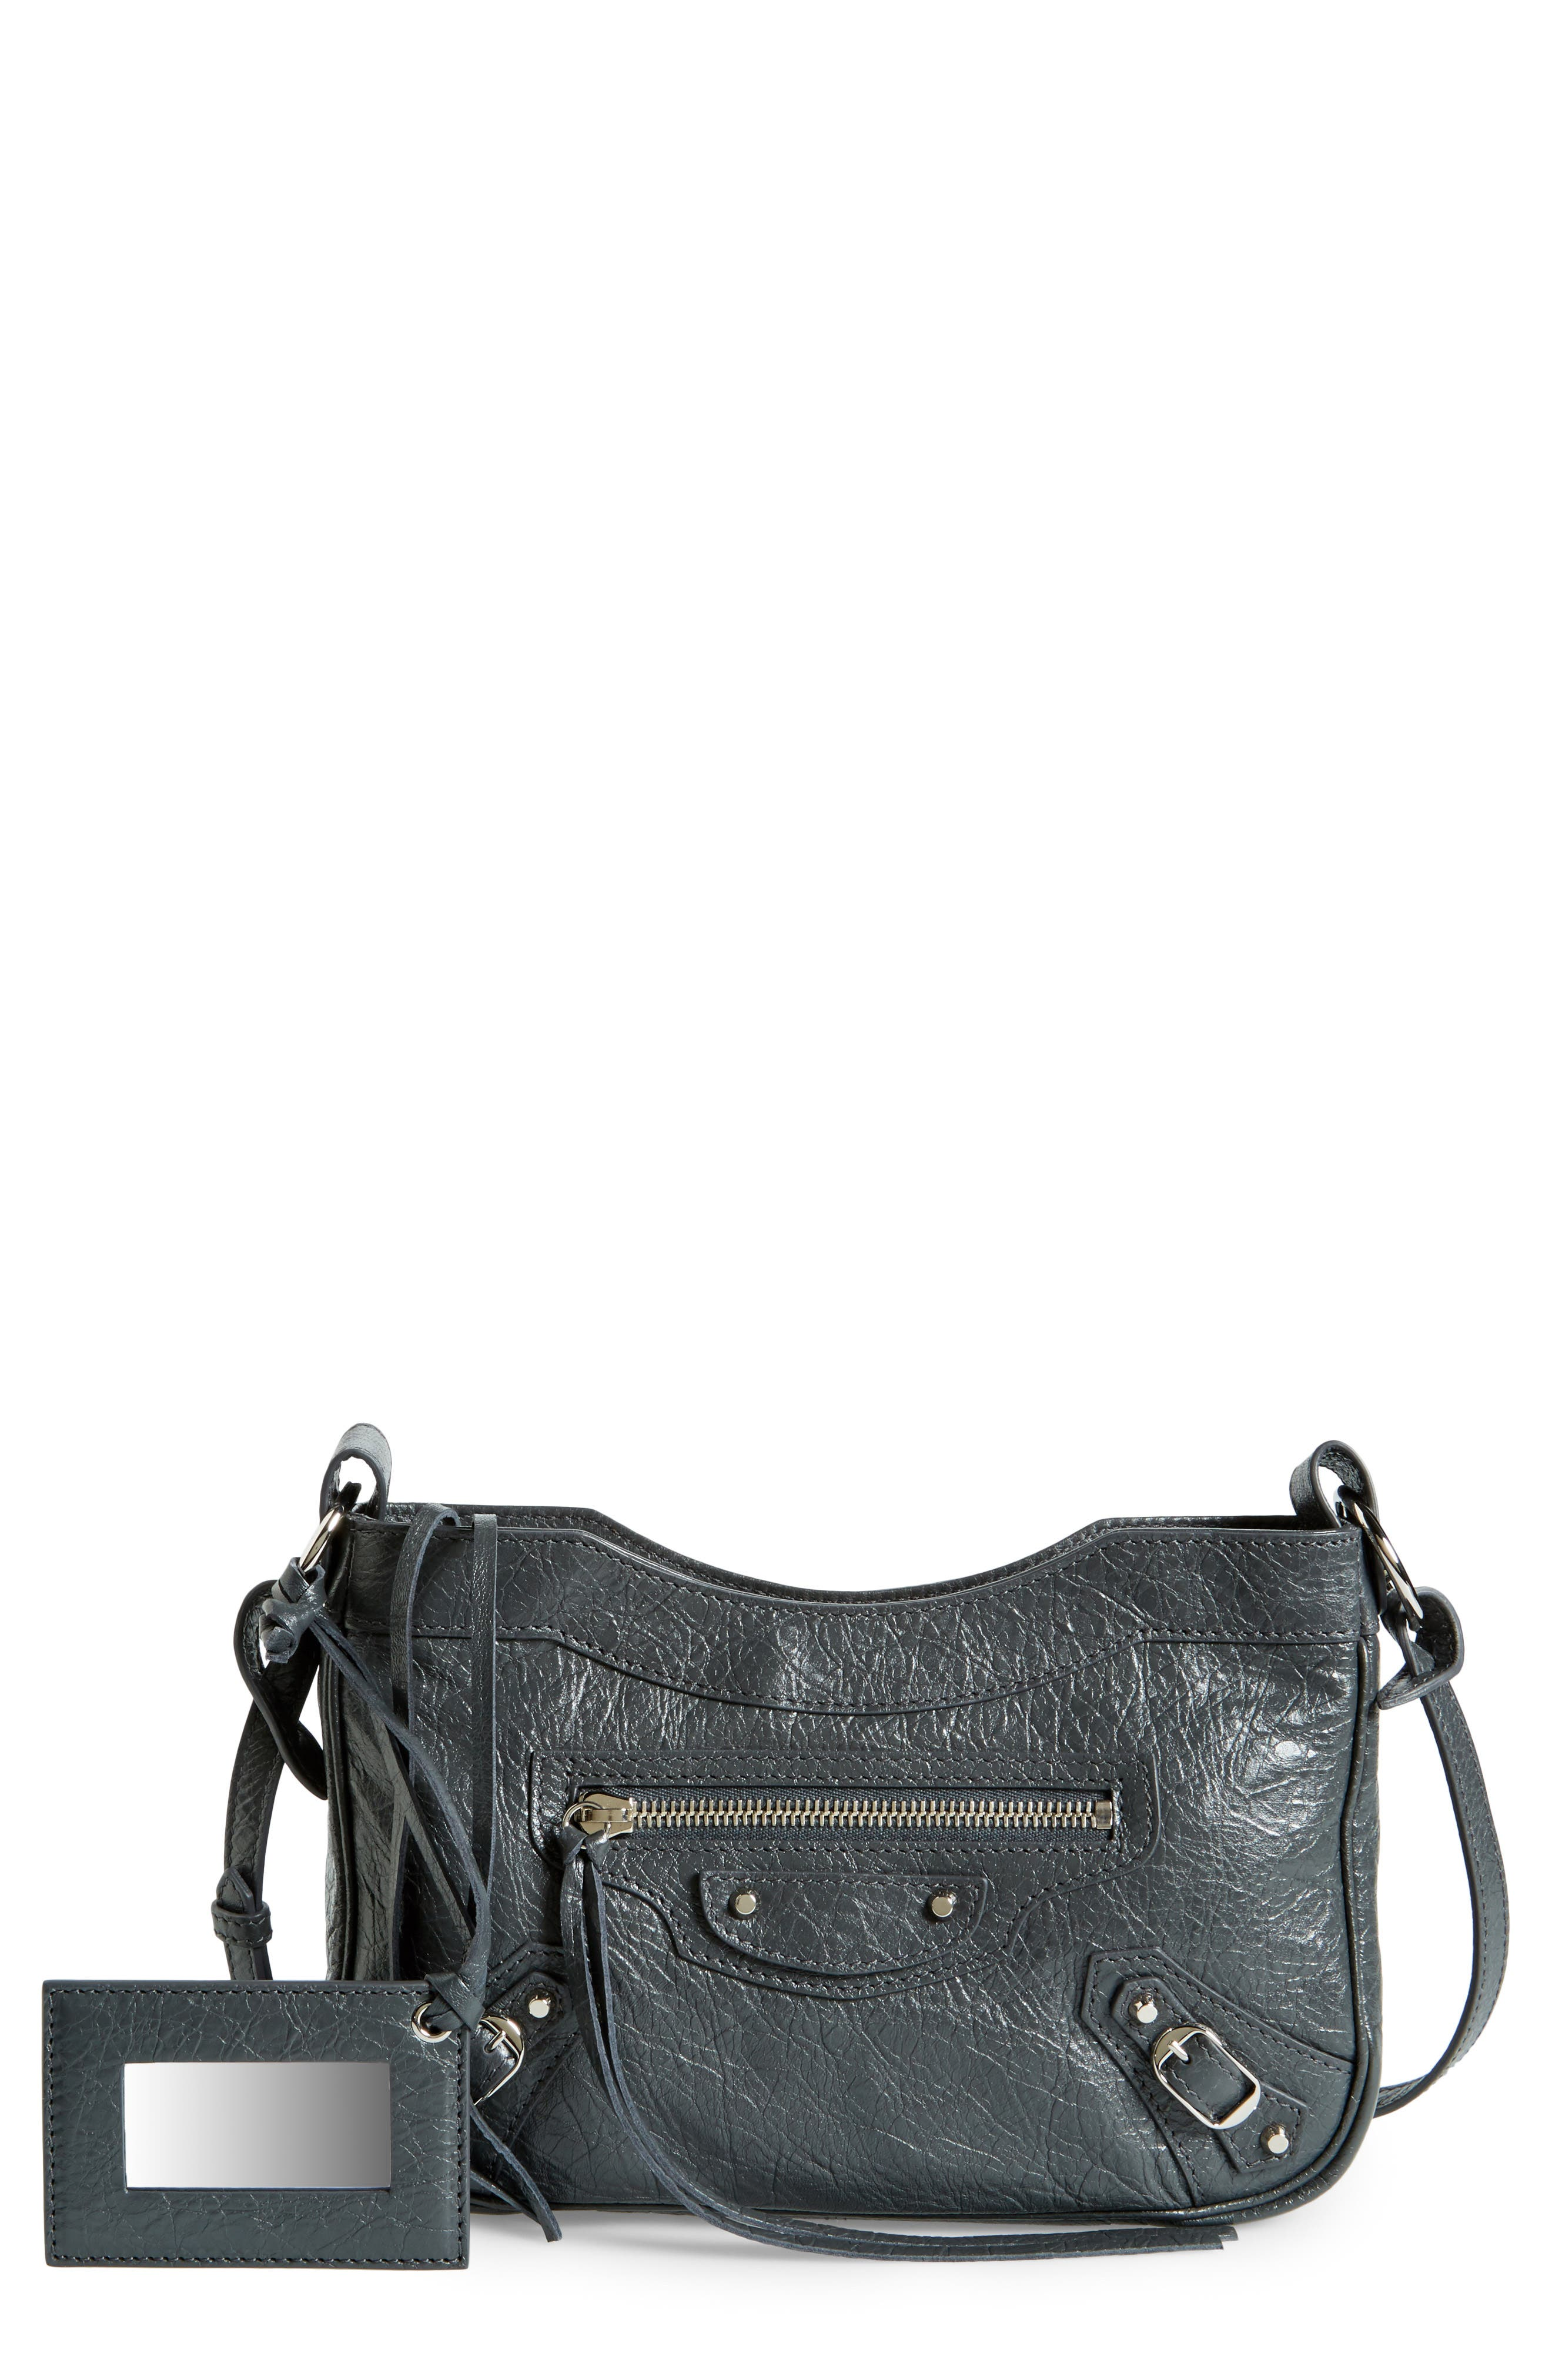 Main Image - Balenciaga Hip Leather Crossbody Bag